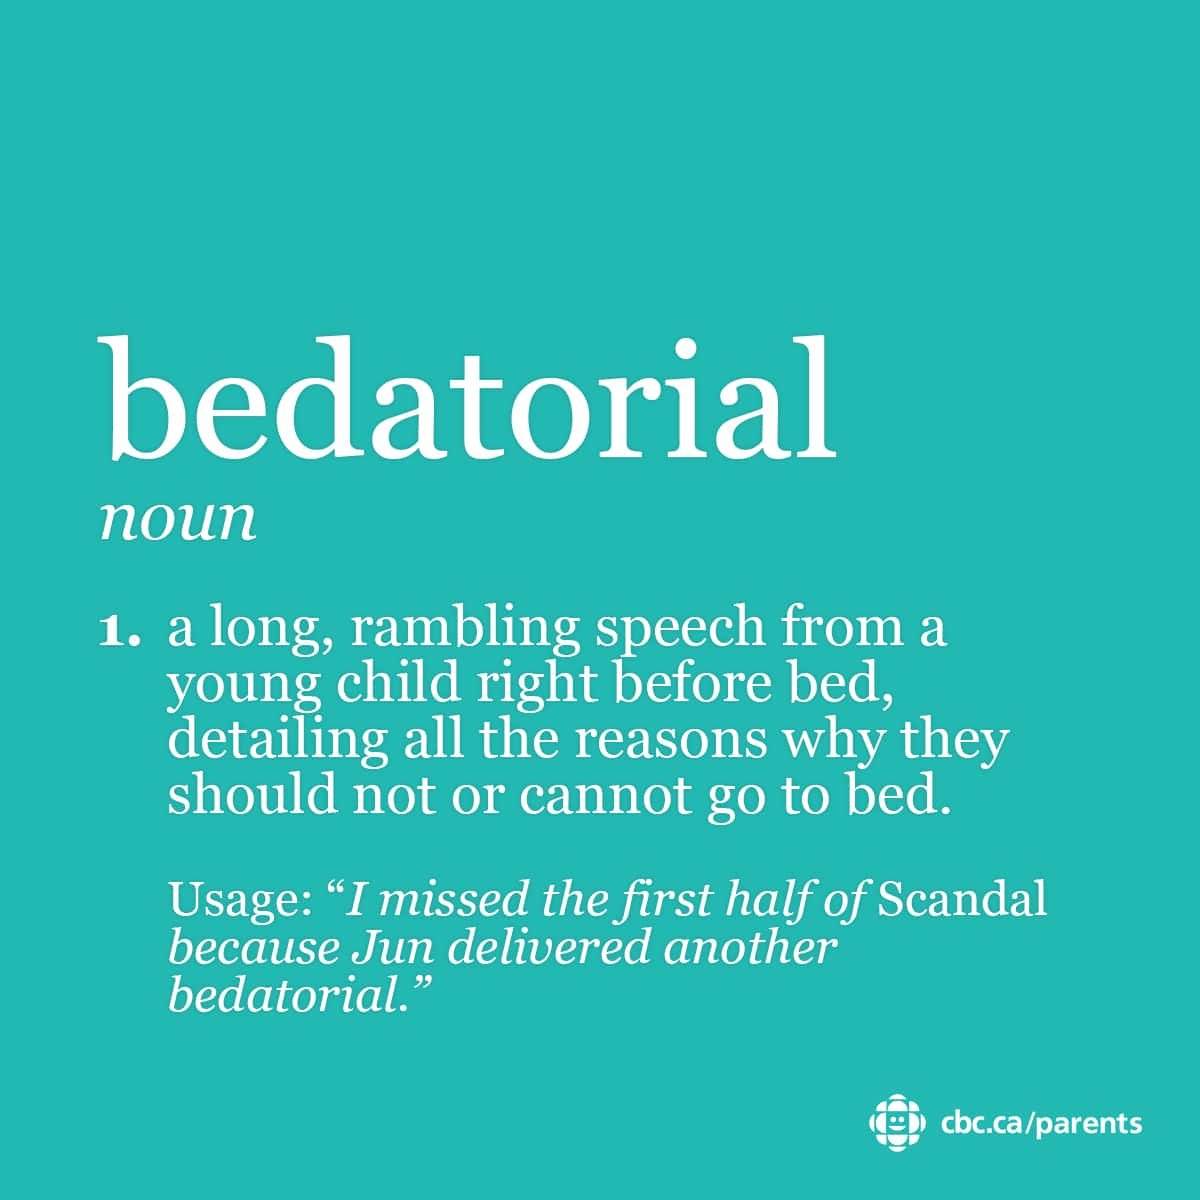 Bedatorial: a long, rambling speech from a young child right before bed, detailing all the reasons why they should not or cannot go to bed.